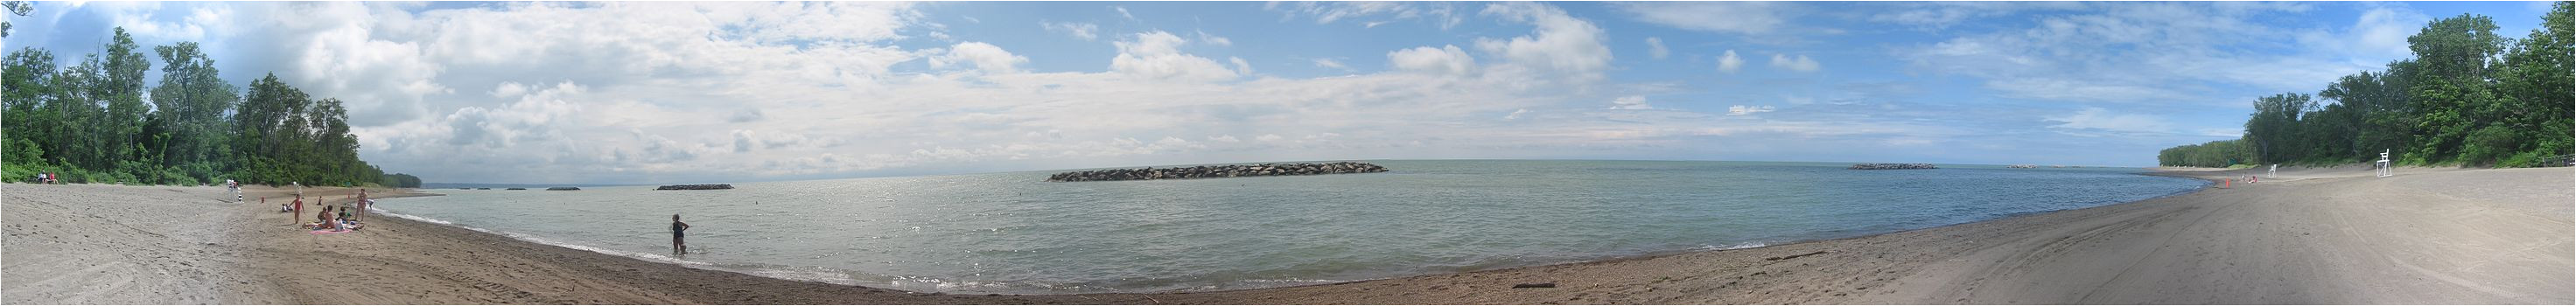 panoramic view of lake erie from beach 7 waterworks beach in presque isle state park in erie county pennsylvania